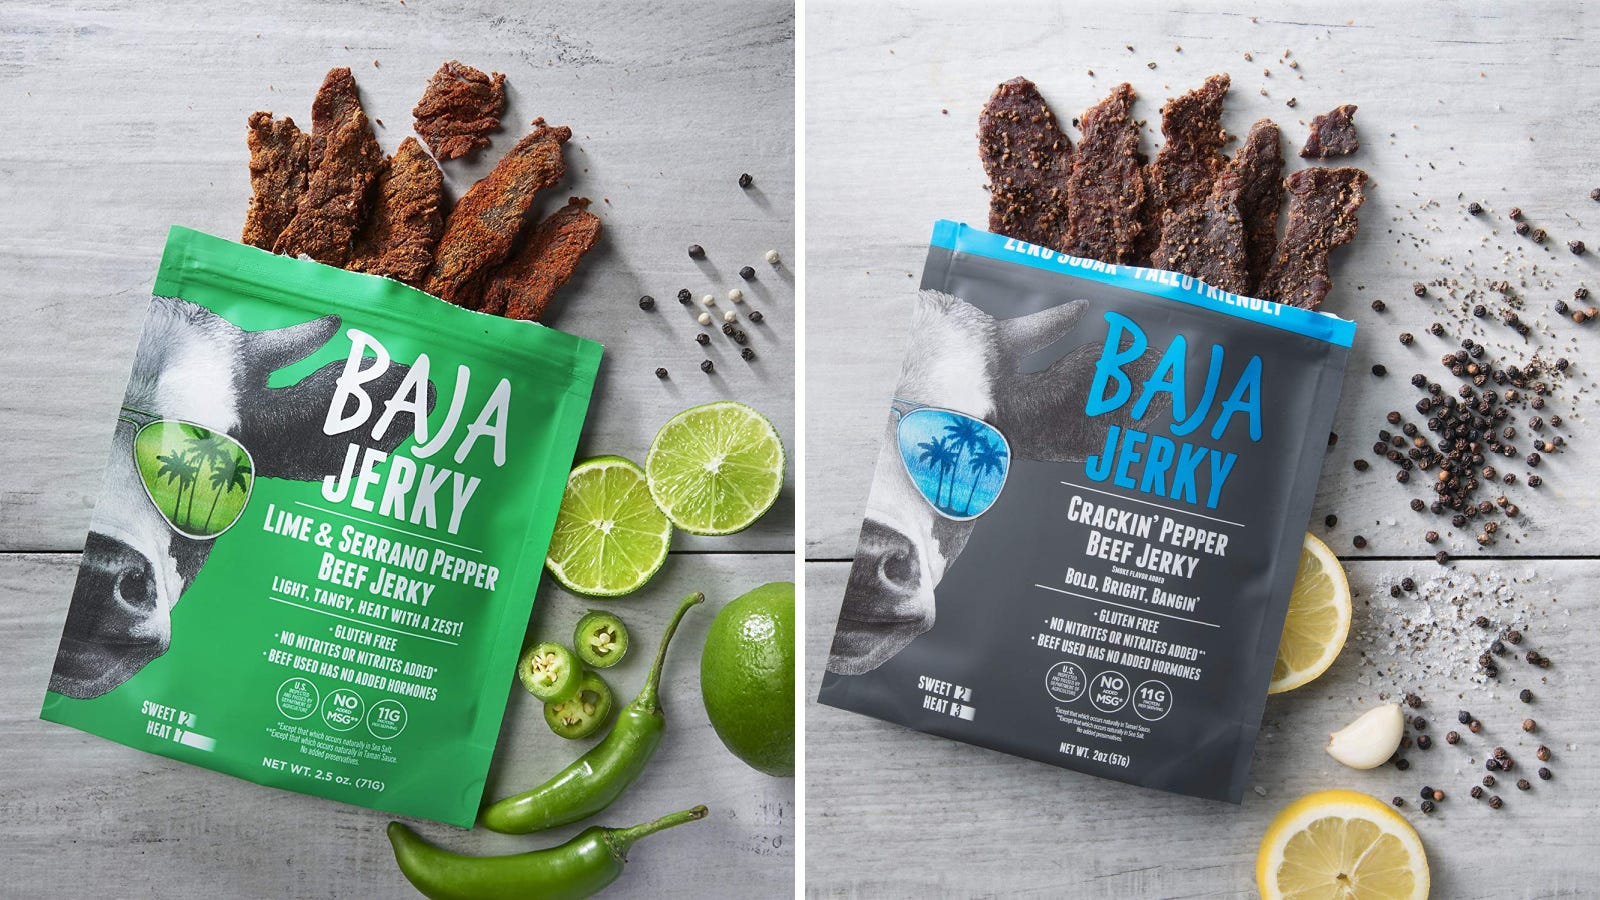 Two images featuring flavors of Baha beef jerky, including Lime & Serrano pepper beef jerky, and Crackin' Pepper jerky.